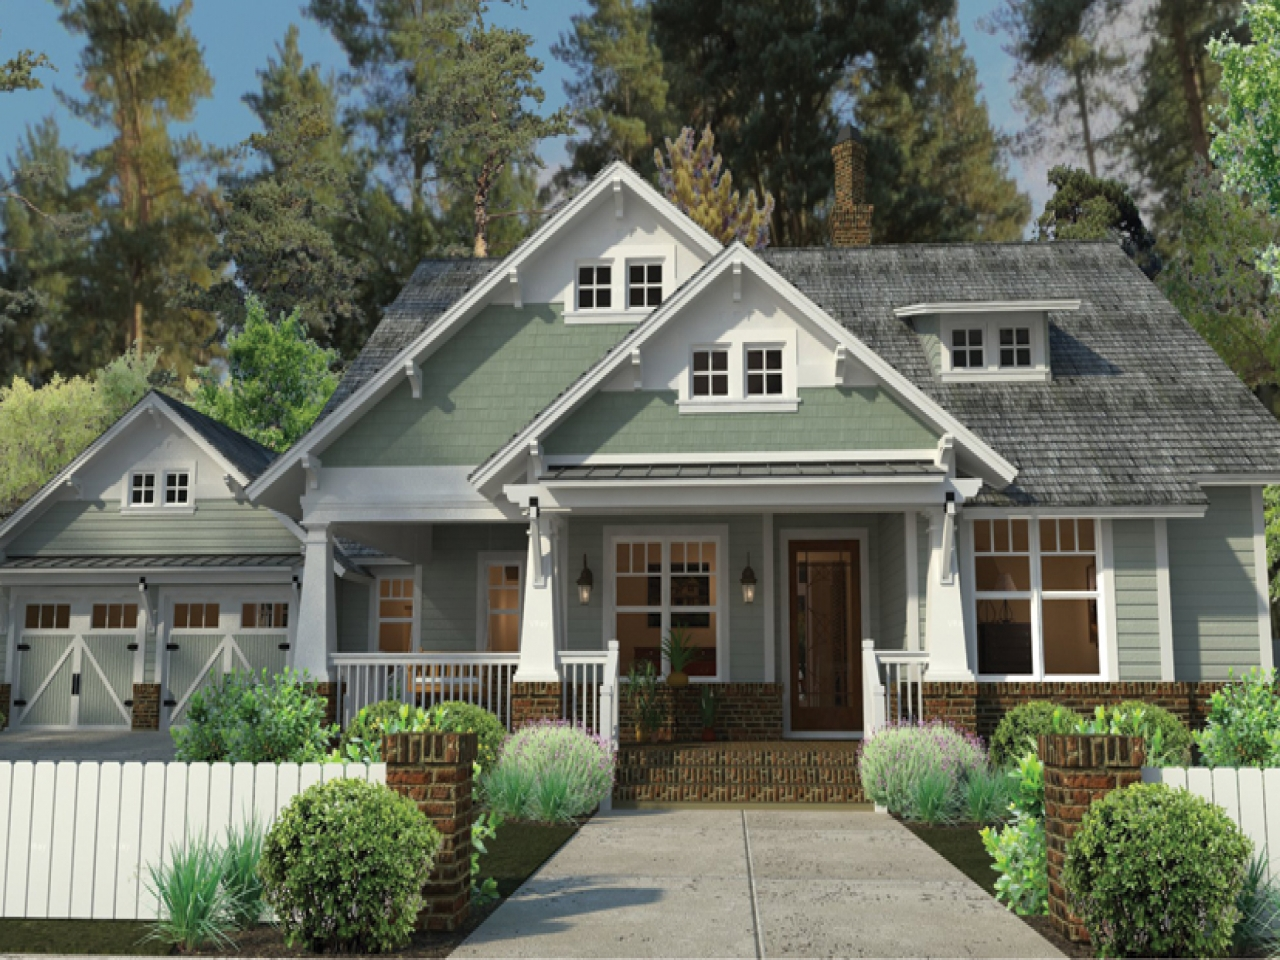 Craftsman style house plans with porches craftsman style for Craftsman style flooring